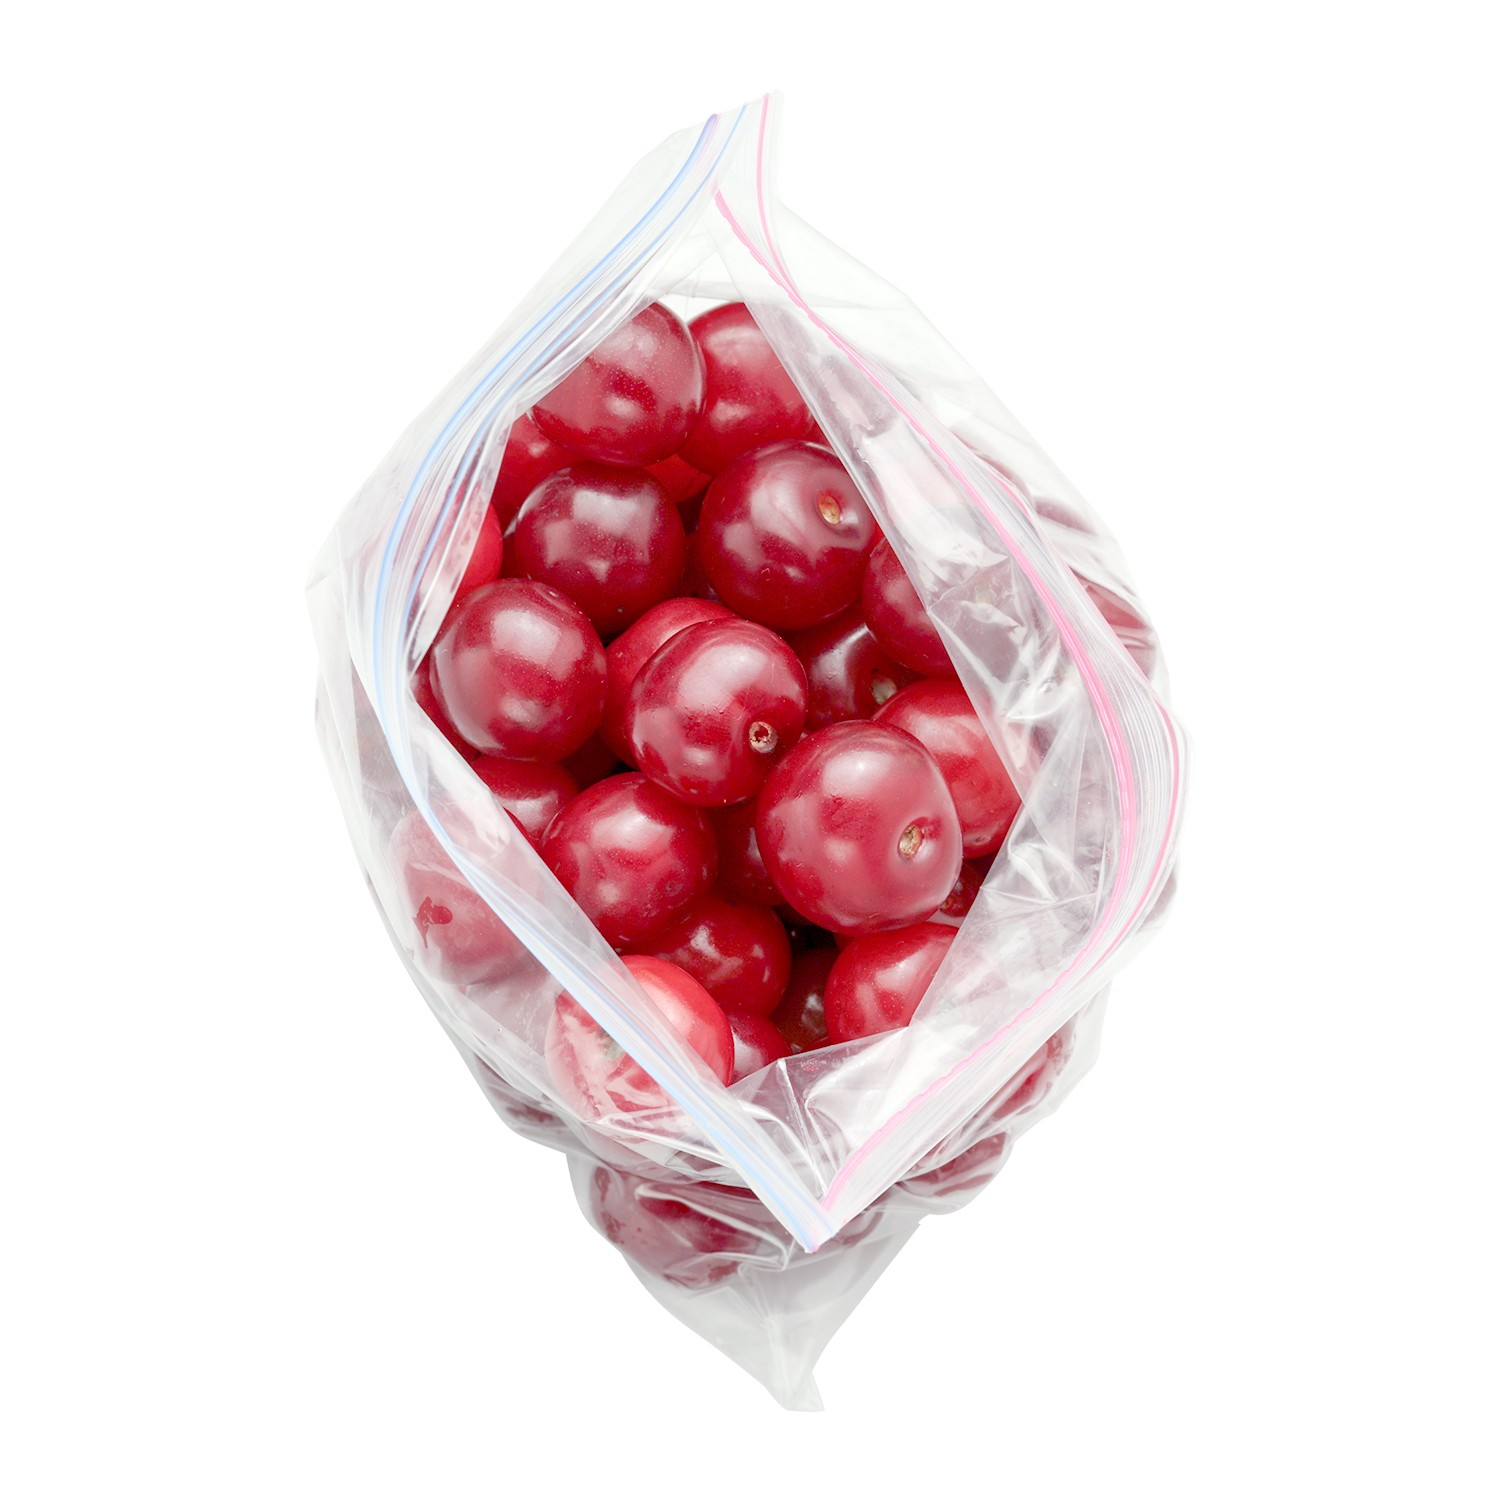 TOTALPACK® Clear Resealable Poly Bags for Shipping Food Storage and FDA approved!